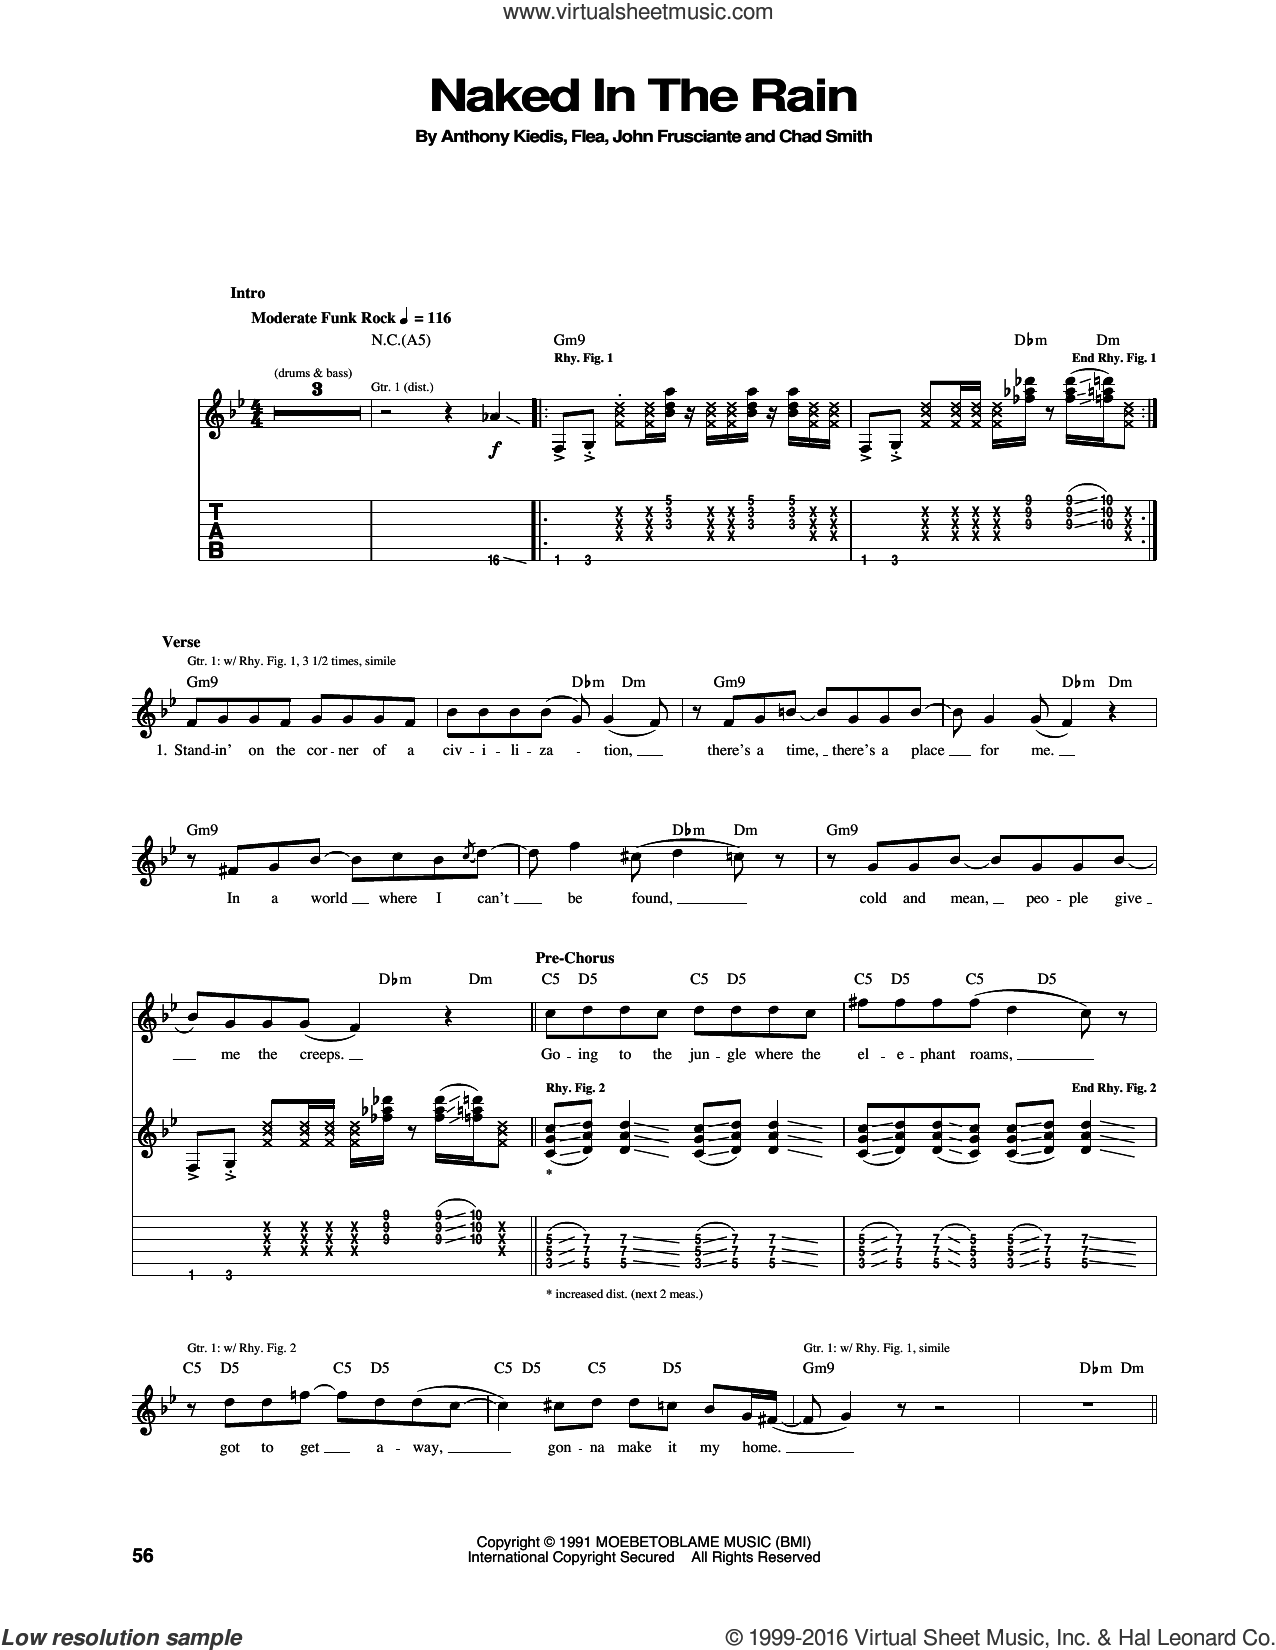 Naked In The Rain sheet music for guitar (tablature) by Red Hot Chili Peppers, Anthony Kiedis, Chad Smith, Flea and John Frusciante, intermediate skill level